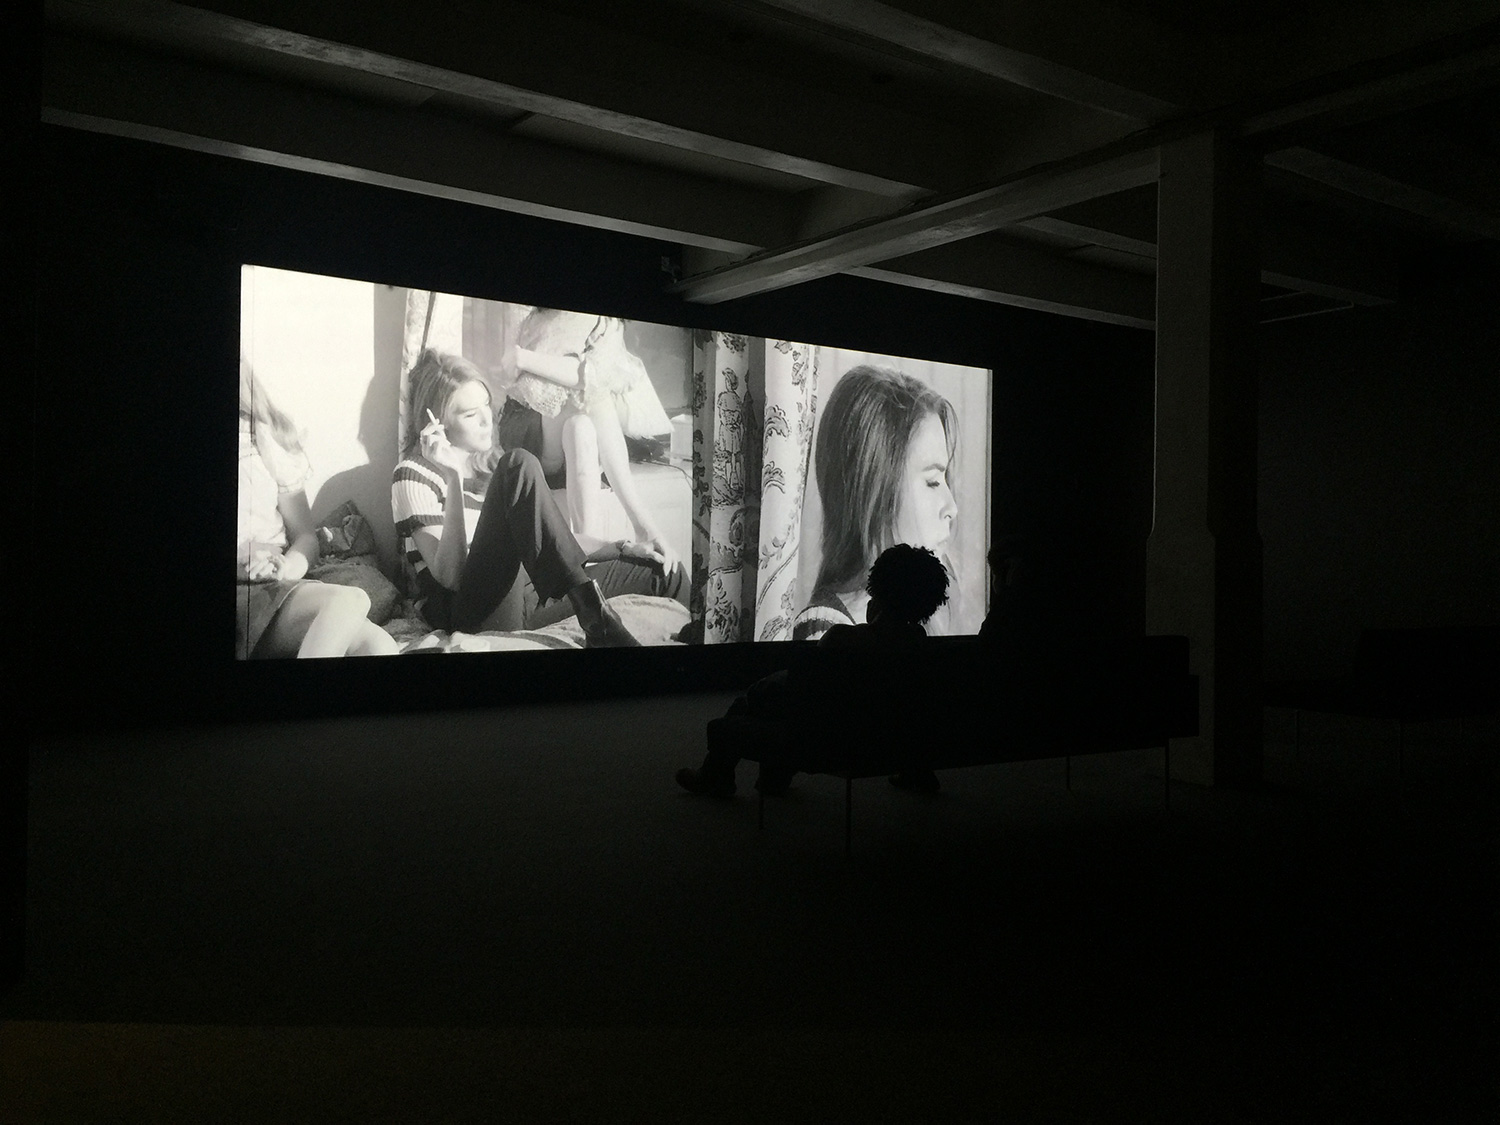 """Chelsea Girls"" screening as intended, two reels of film playing on two screens, side-by-side. The film is unavailable for purchase and currently you can only watch it at the Warhol Museum."